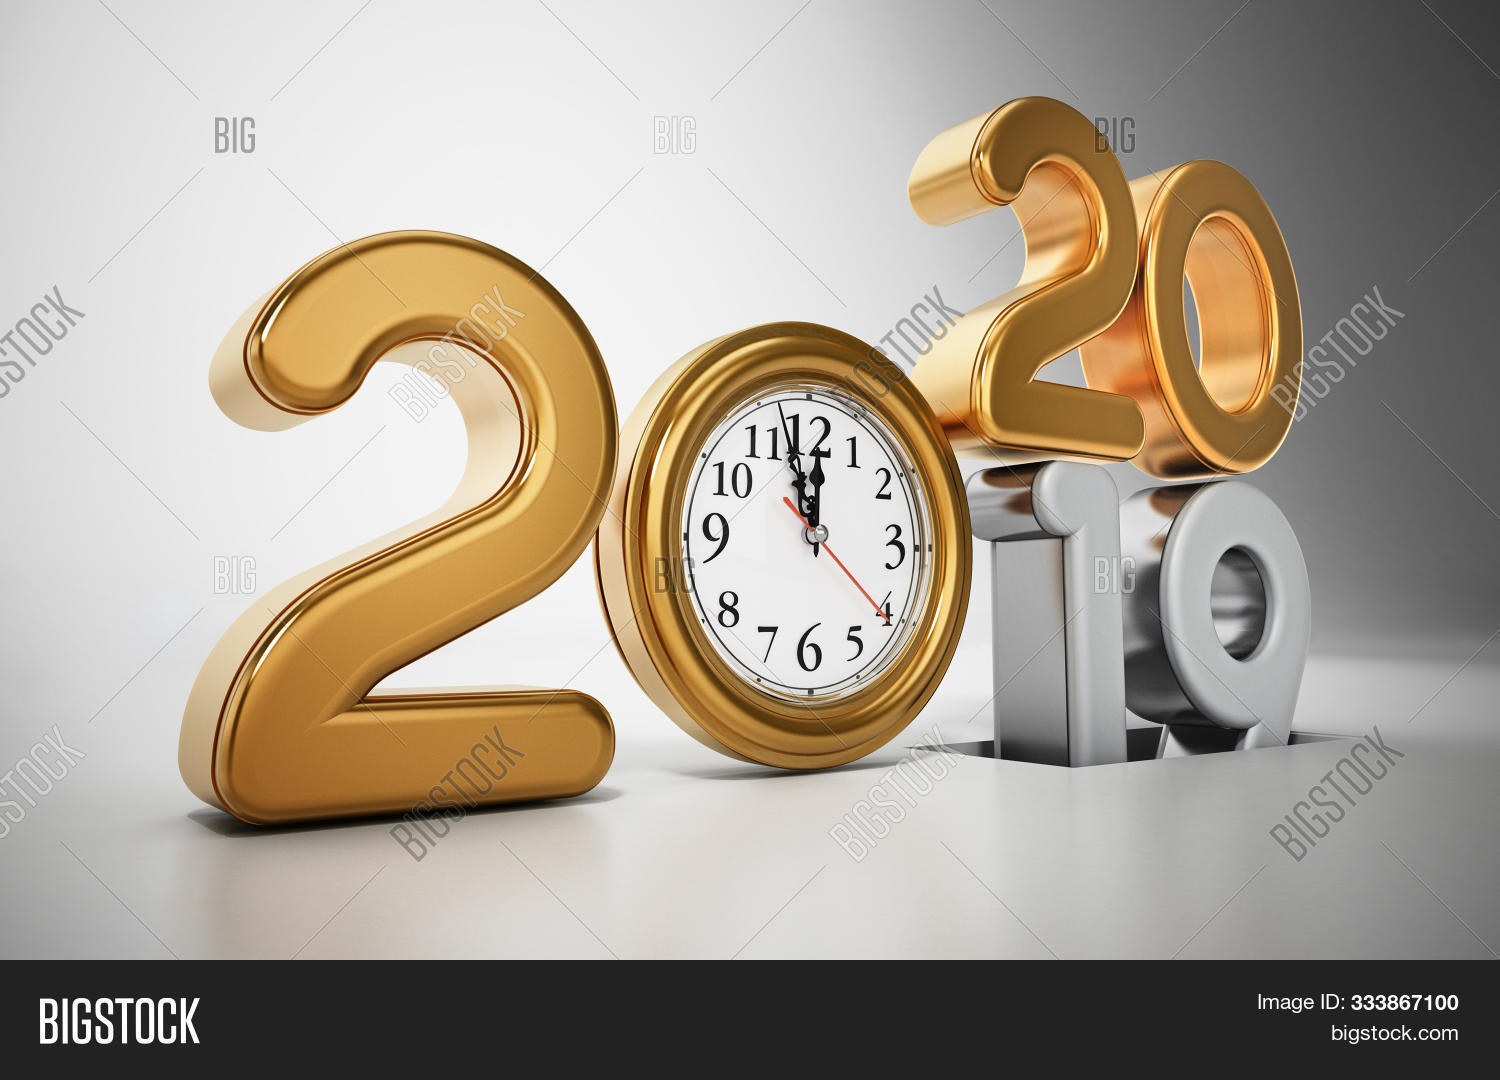 2019,2020,3d,beginning,business,calendar,celebration,change,christmas,clock,concept,countdown,date,december,design,end,eve,event,future,greeting,holiday,illustration,isolated,merry,new,newyear,number,planning,render,shape,start,time,turn,white,winter,xmas,year